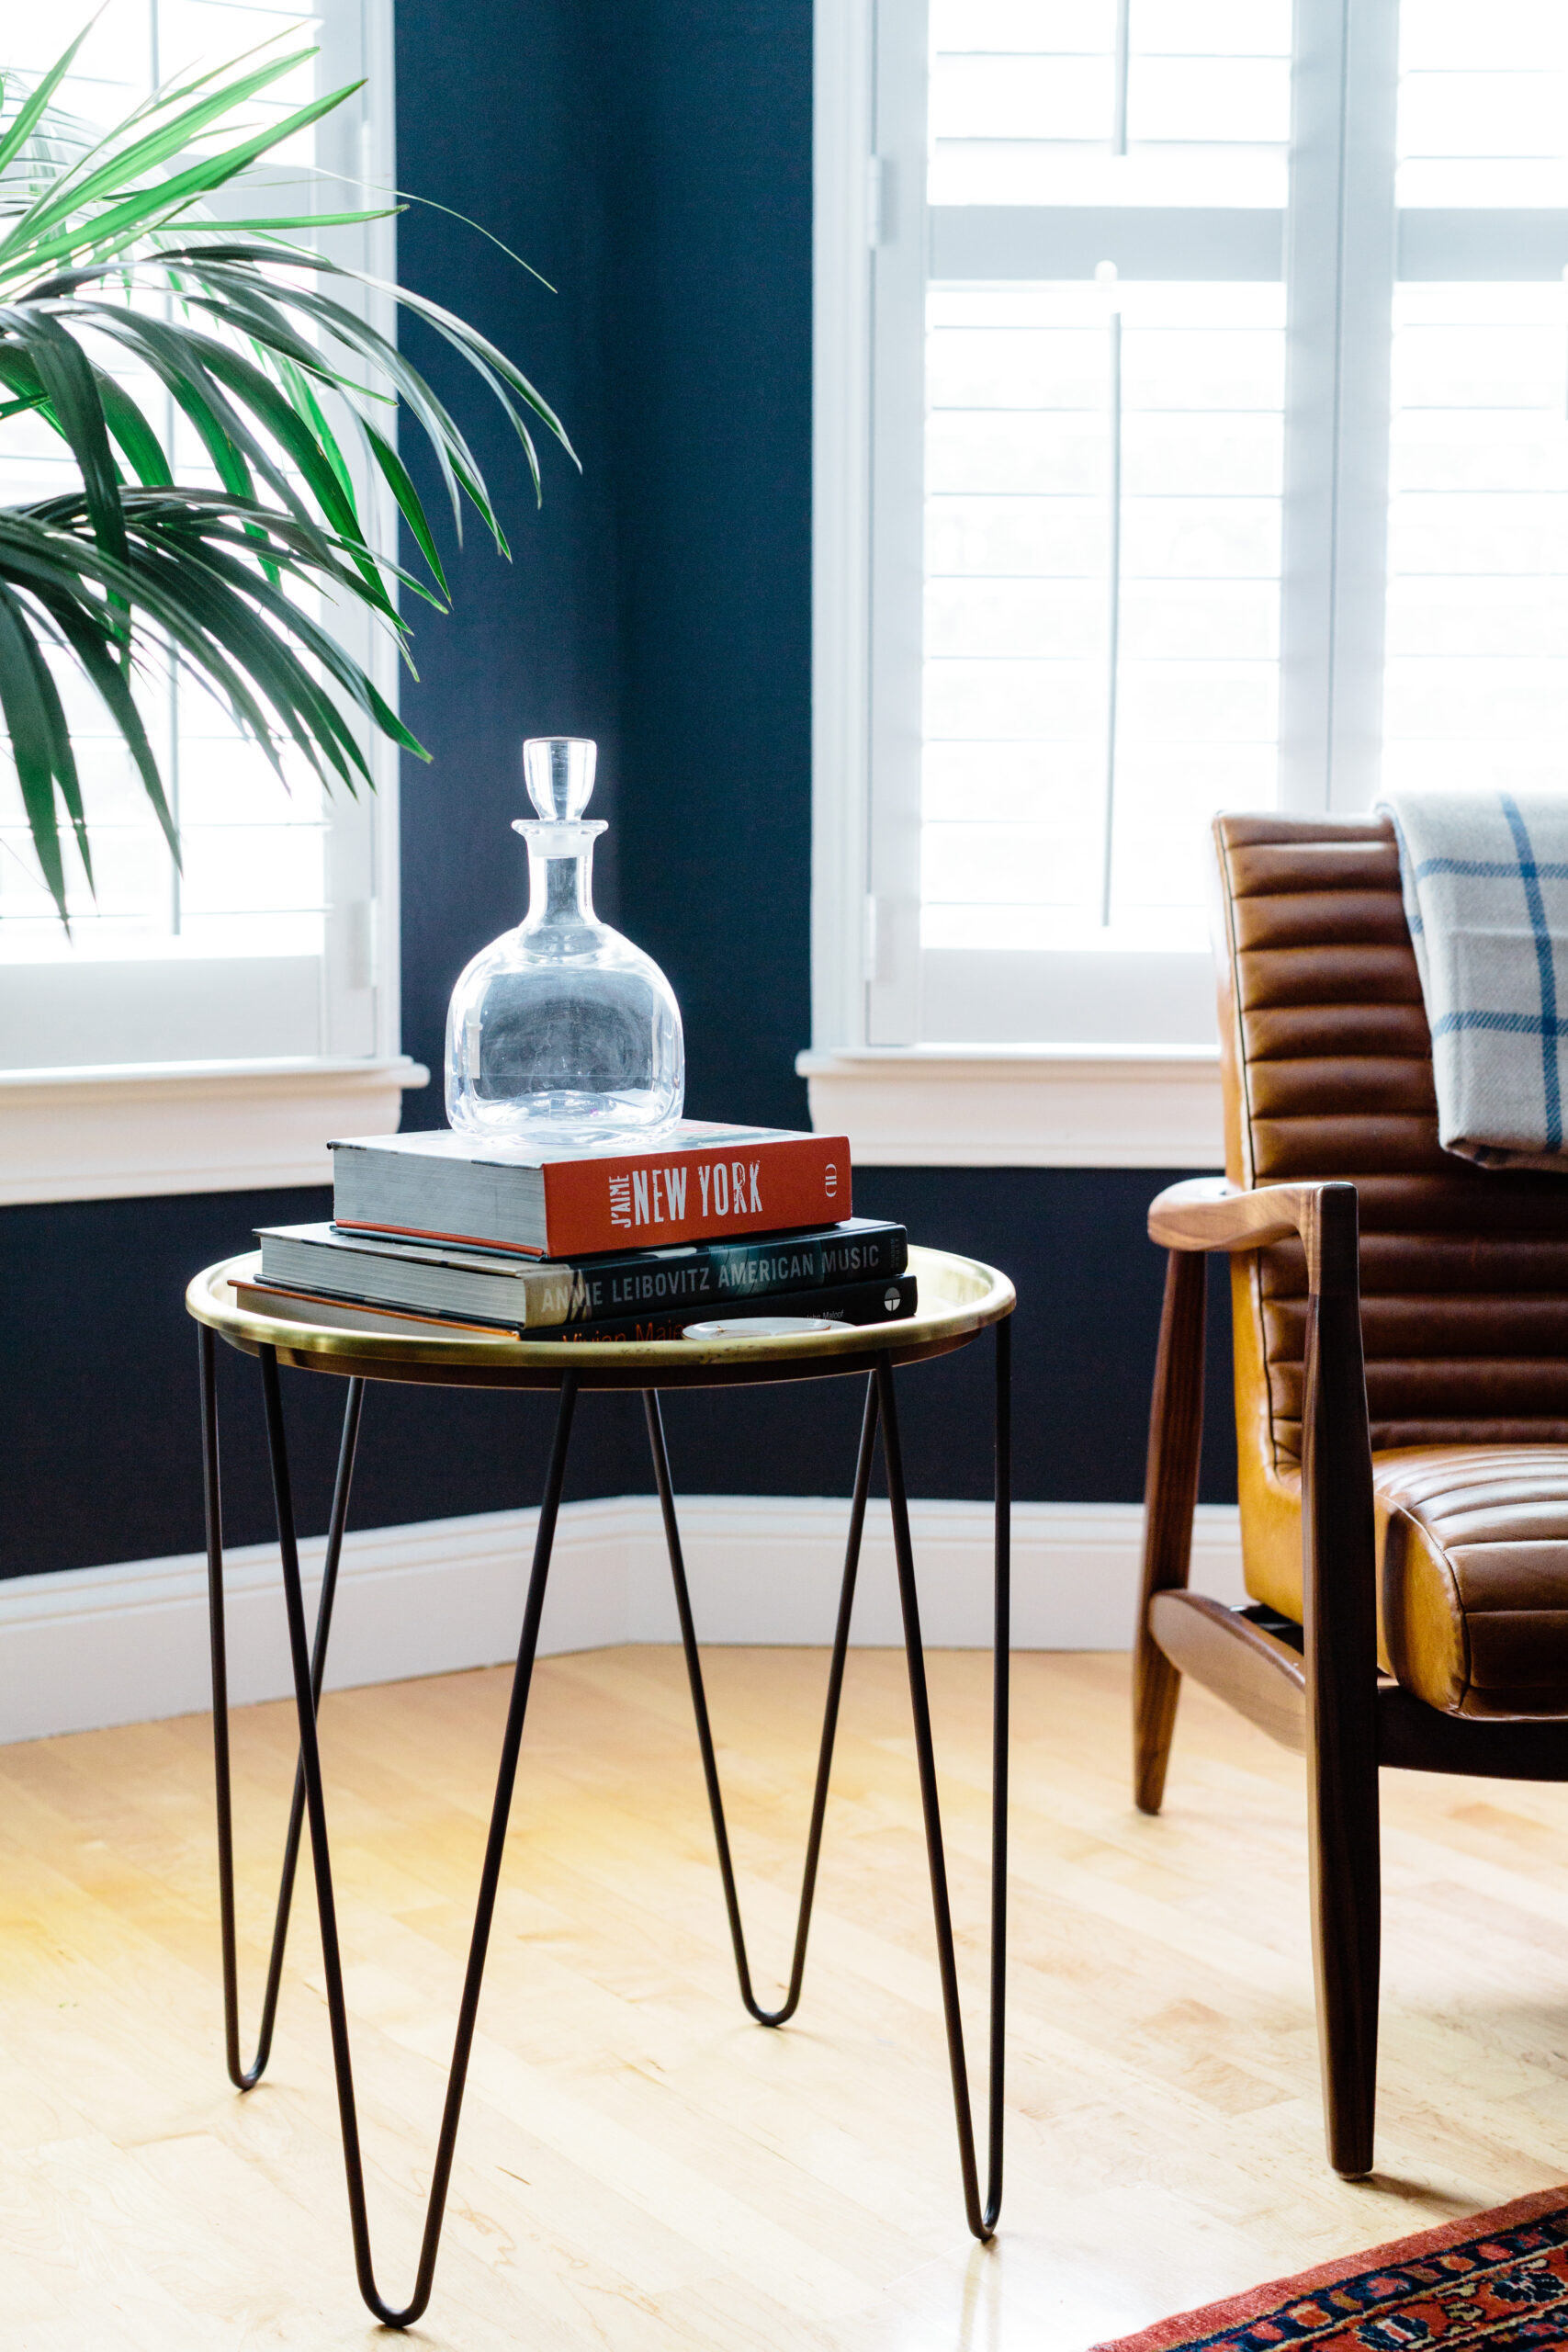 this is a project by Jessica Klein featuring a mid century modern chair and table